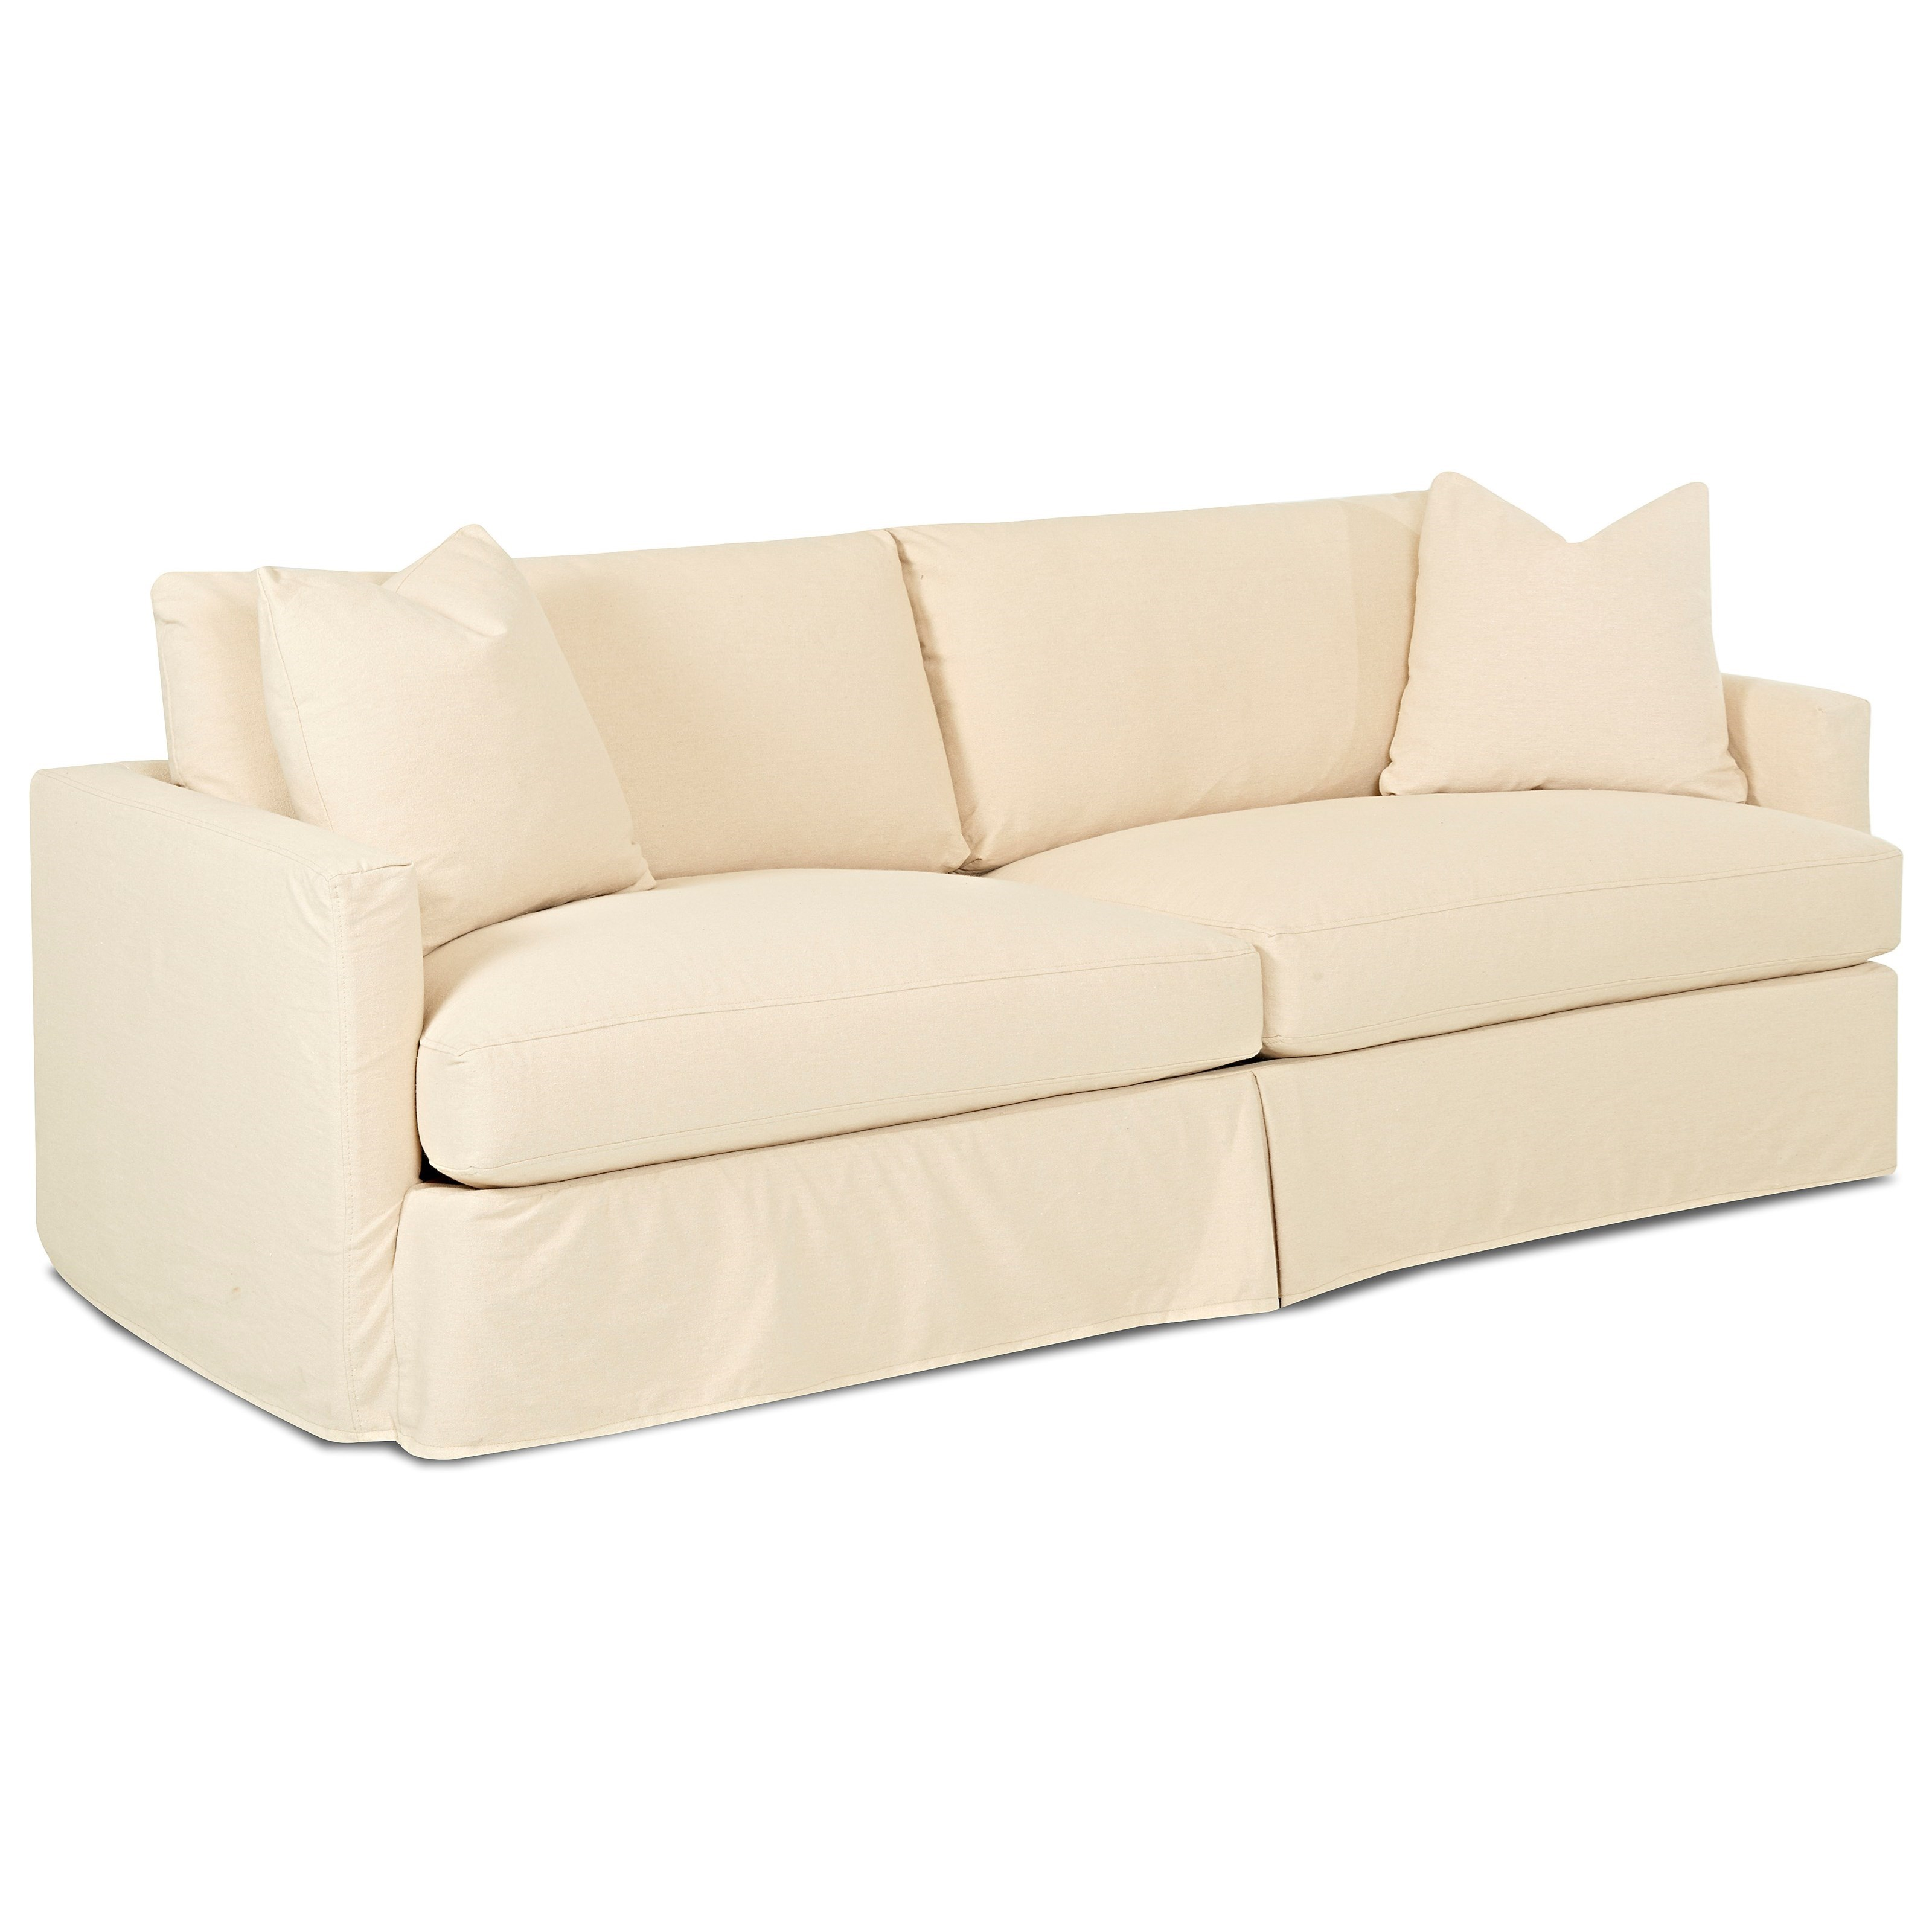 Klaussner Leisure Extra Large Sofa With Slipcover Value